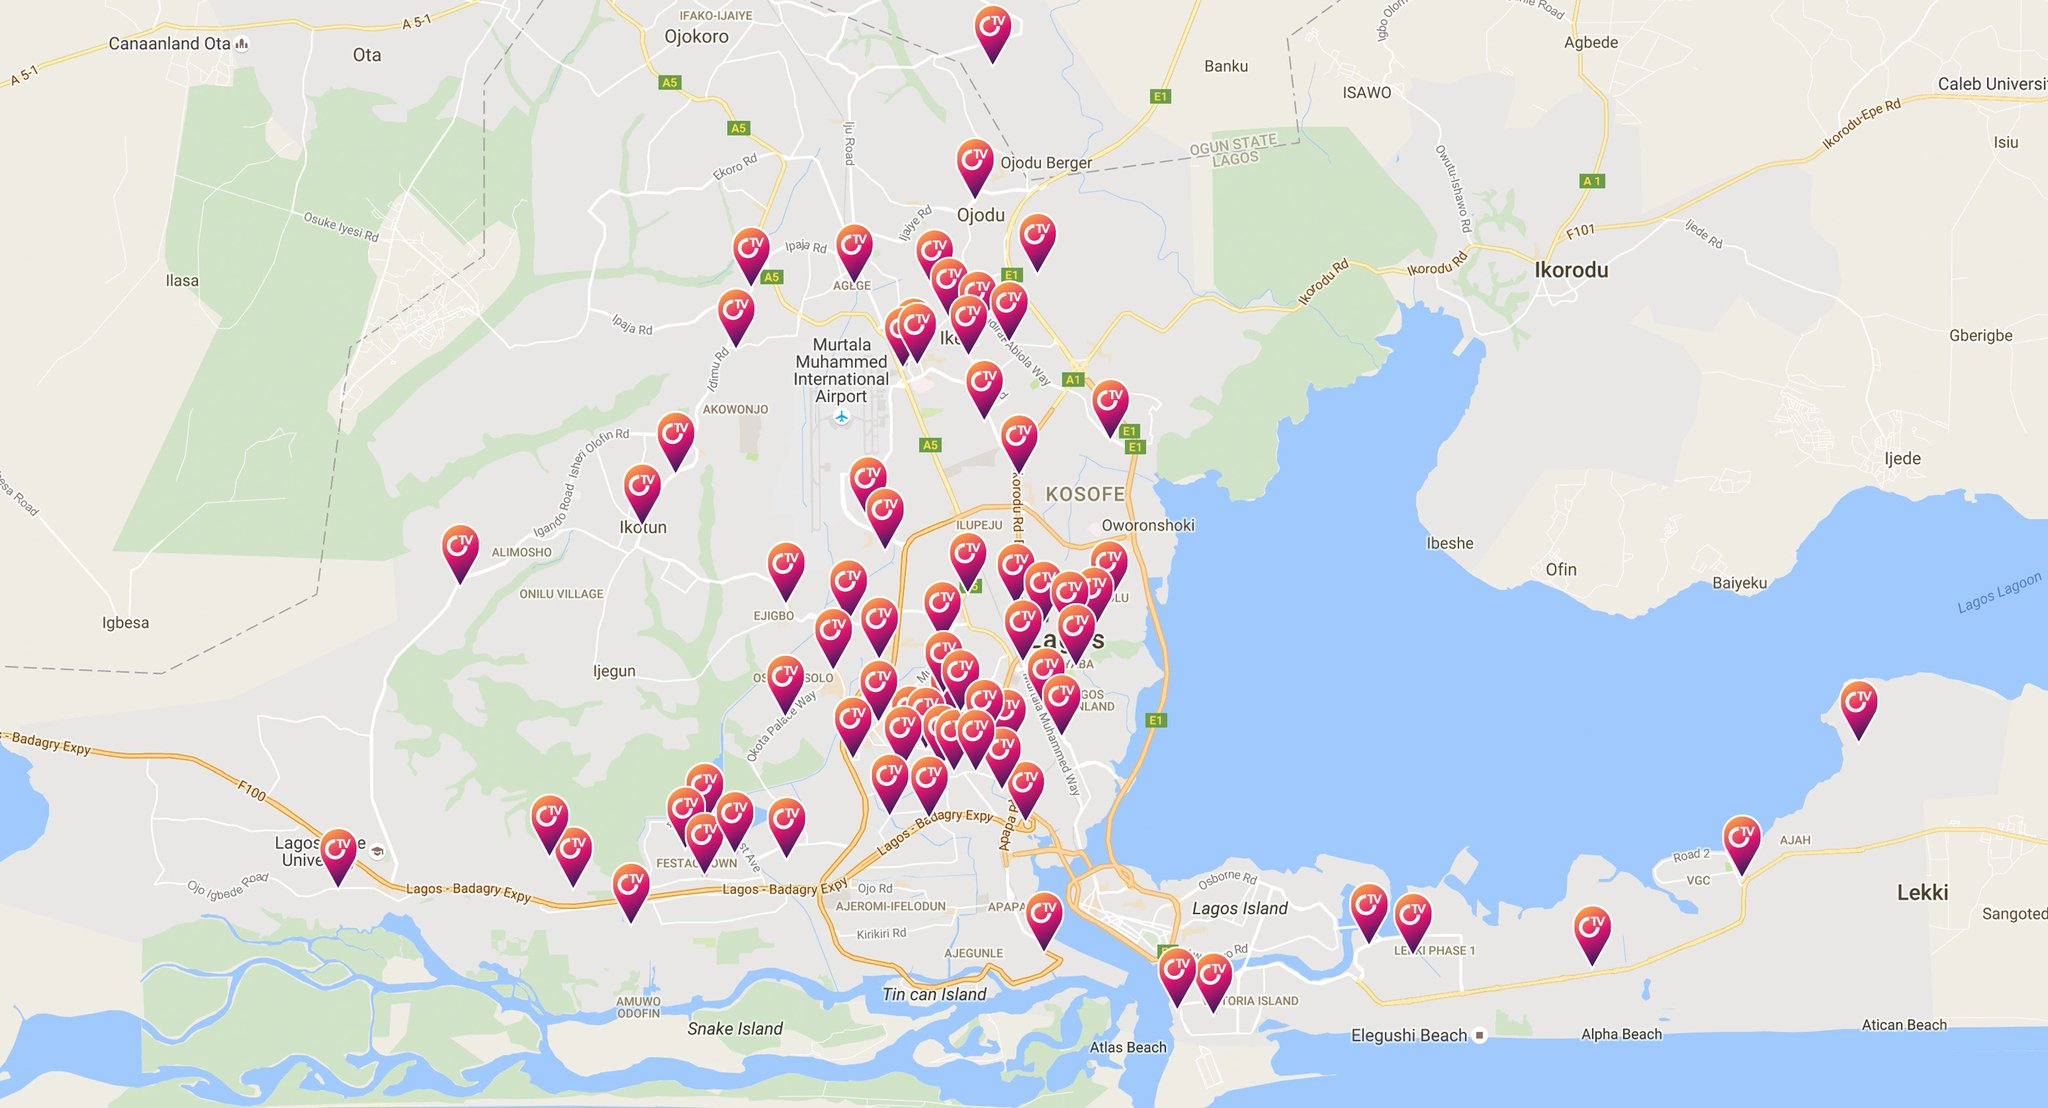 Map Showing iRoko Kiosk Locations in Lagos// Source: https://medium.com/@jasonnjoku/